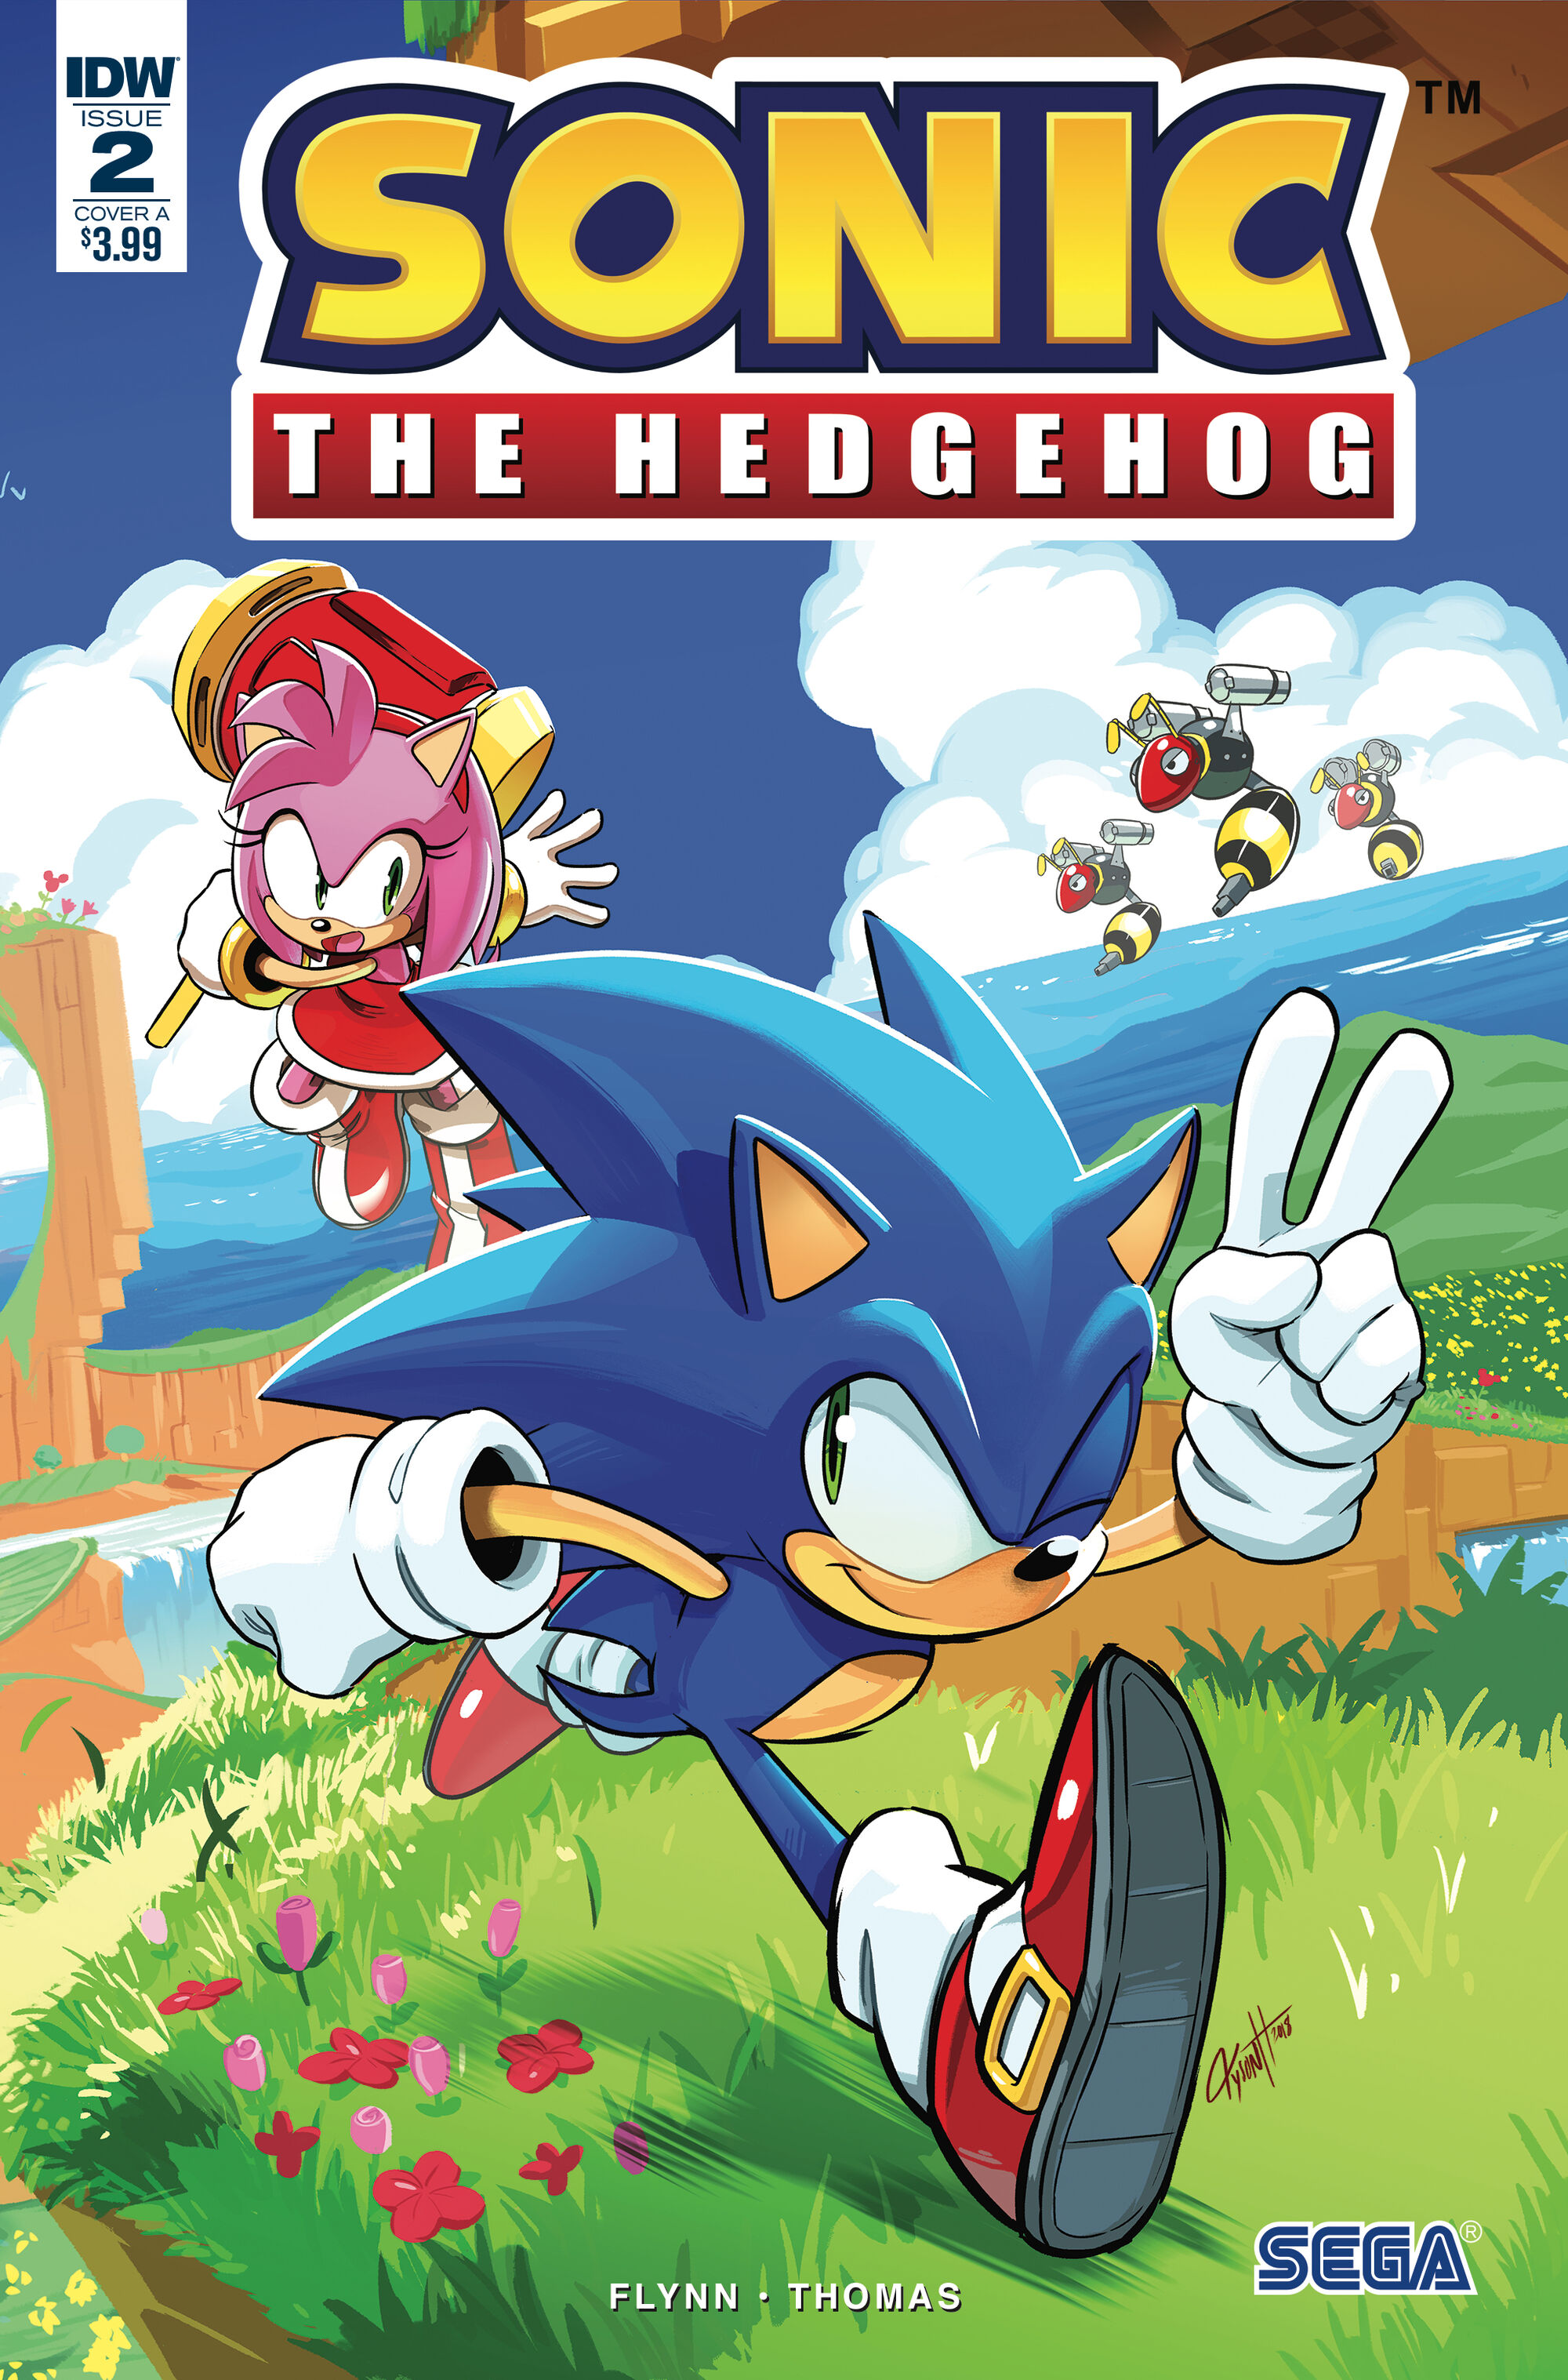 IDW Sonic the Hedgehog Issue 2 Sonic News Network